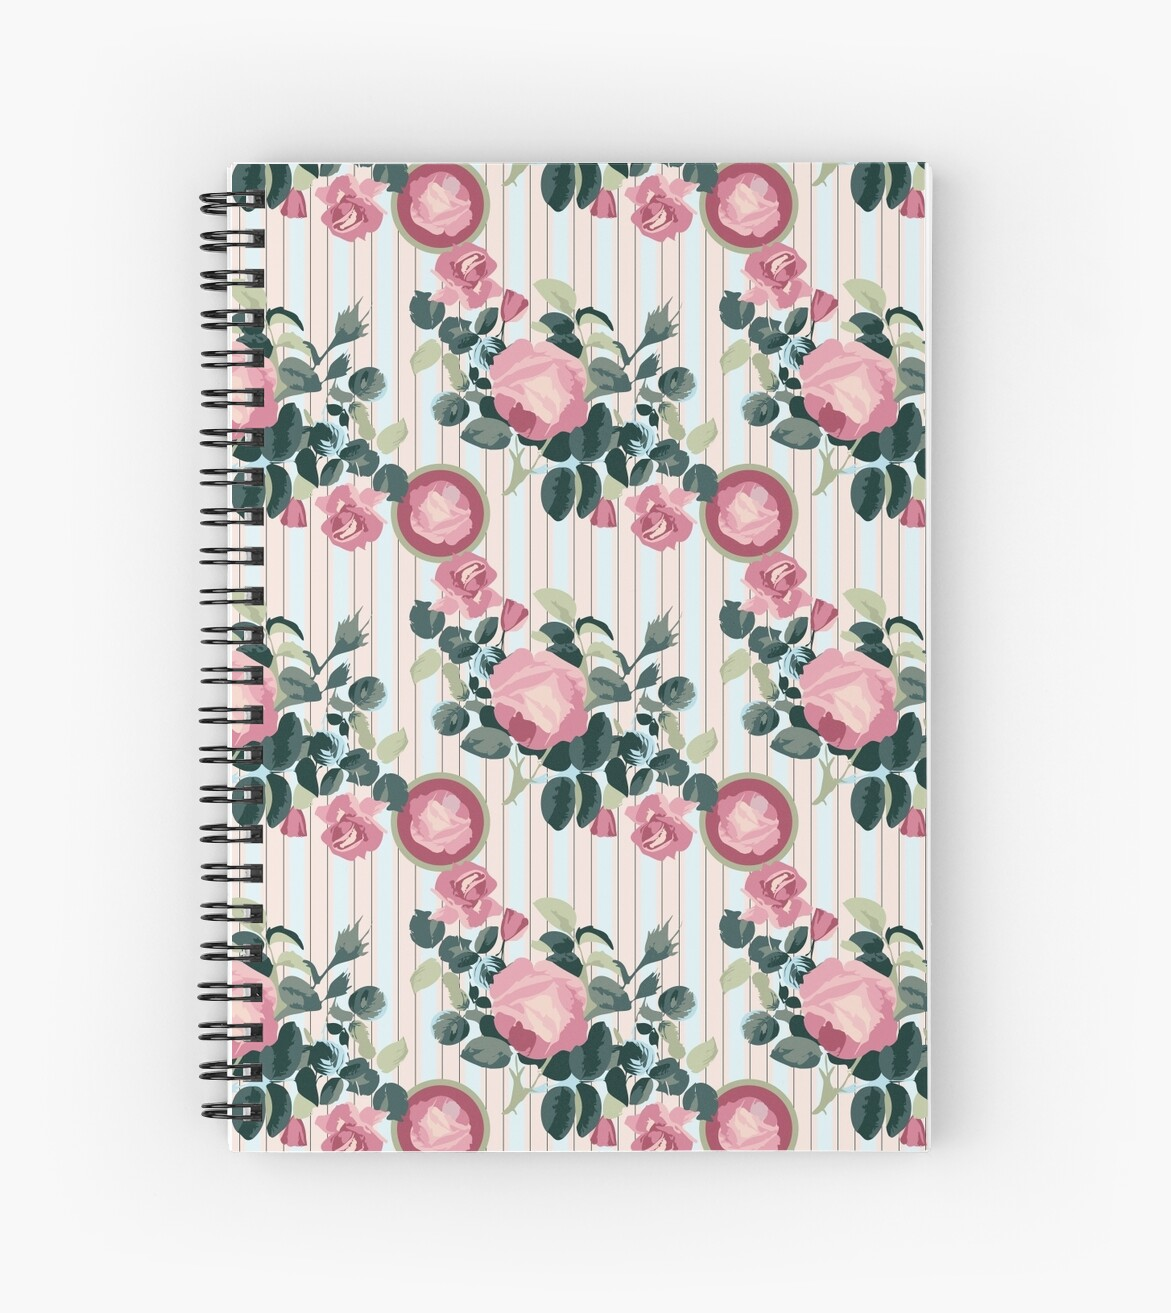 Pink Roses Illustration Blue Green Leaves Peach Stripes by Beverly Claire Kaiya